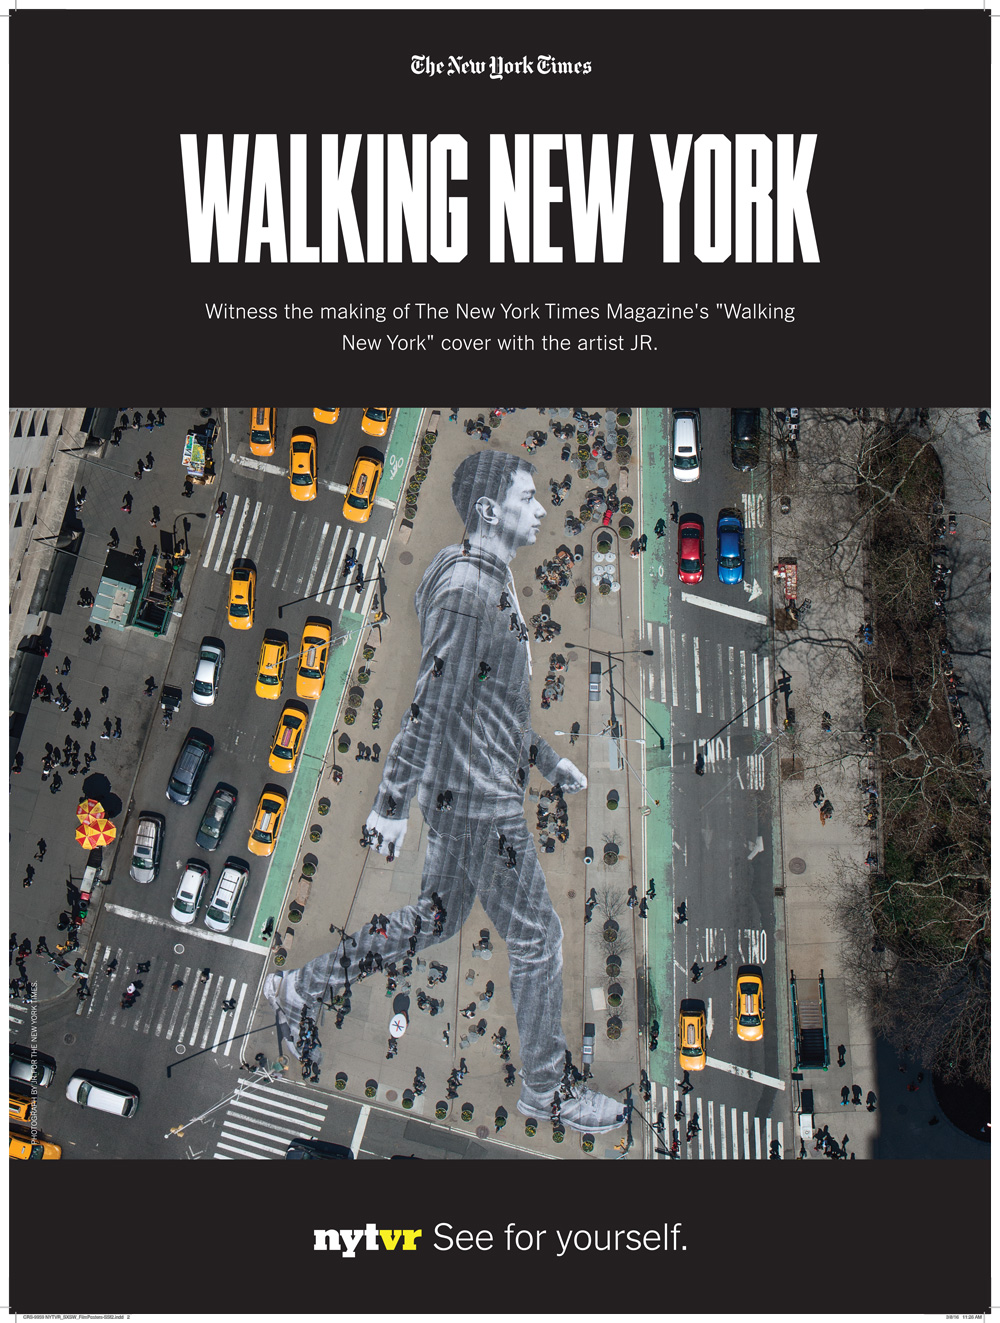 poster_walkingny.jpg